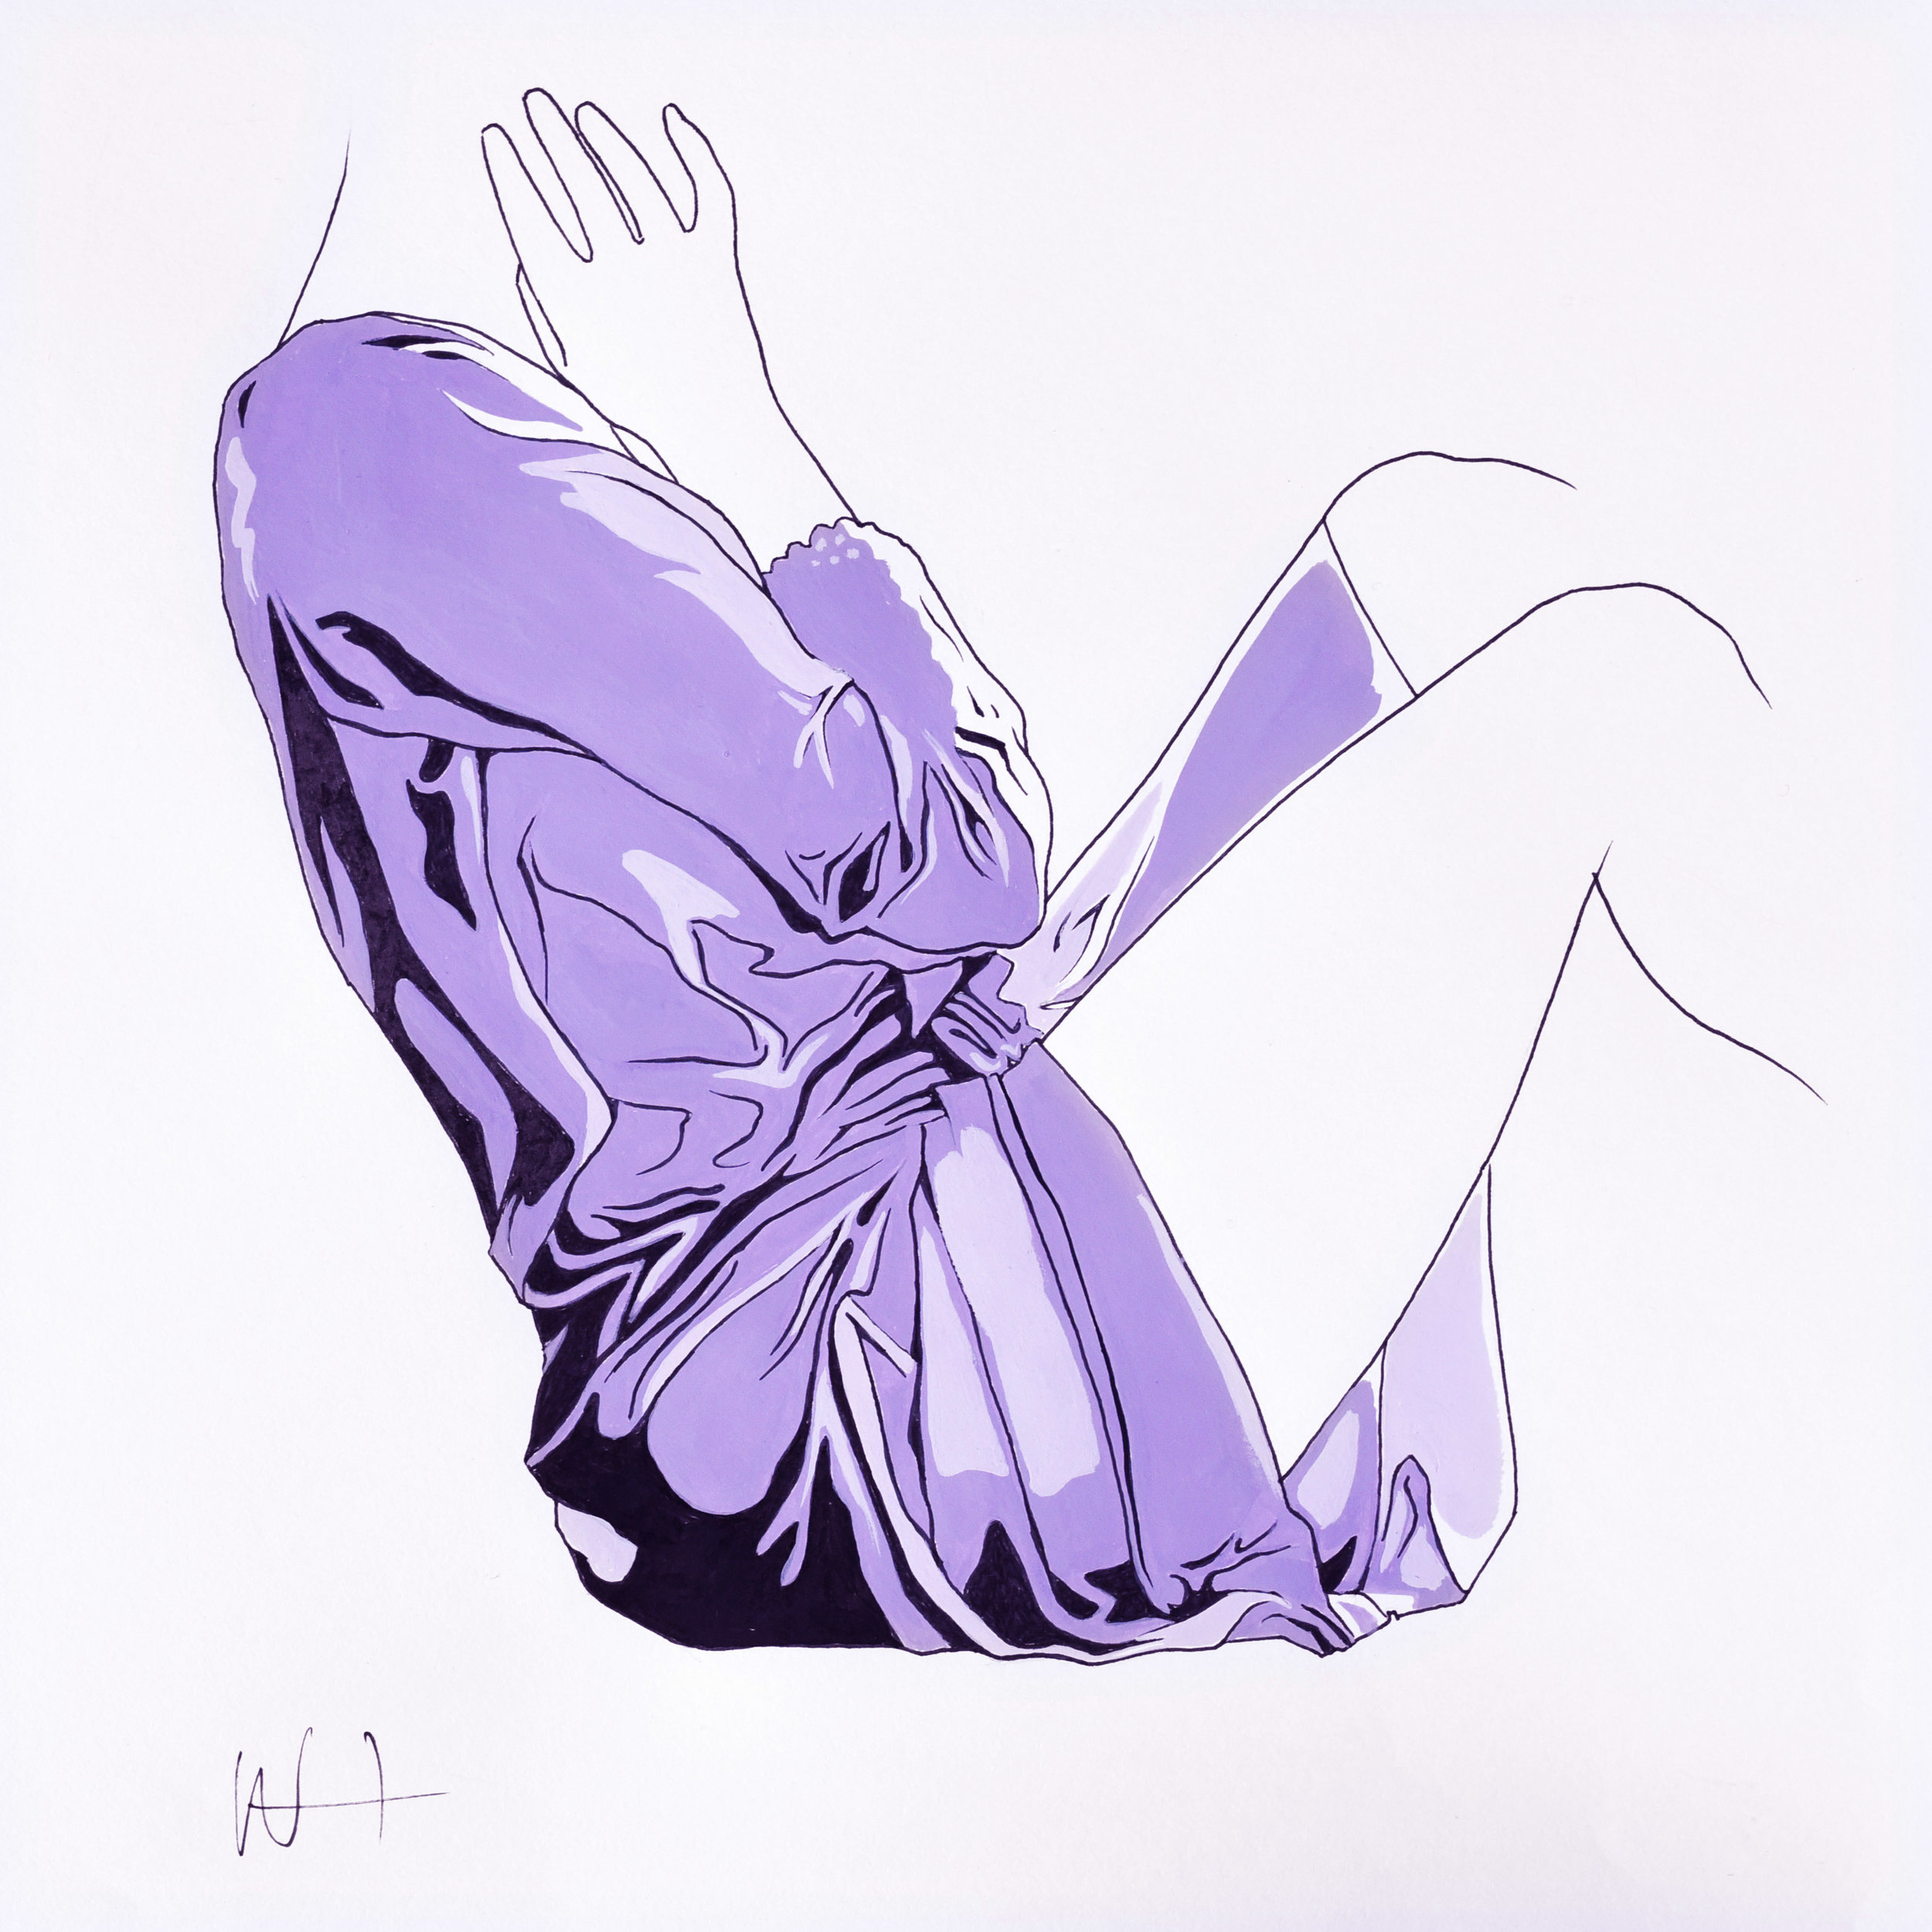 Minimal fashion illustration line drawing of a woman in a purple dress.